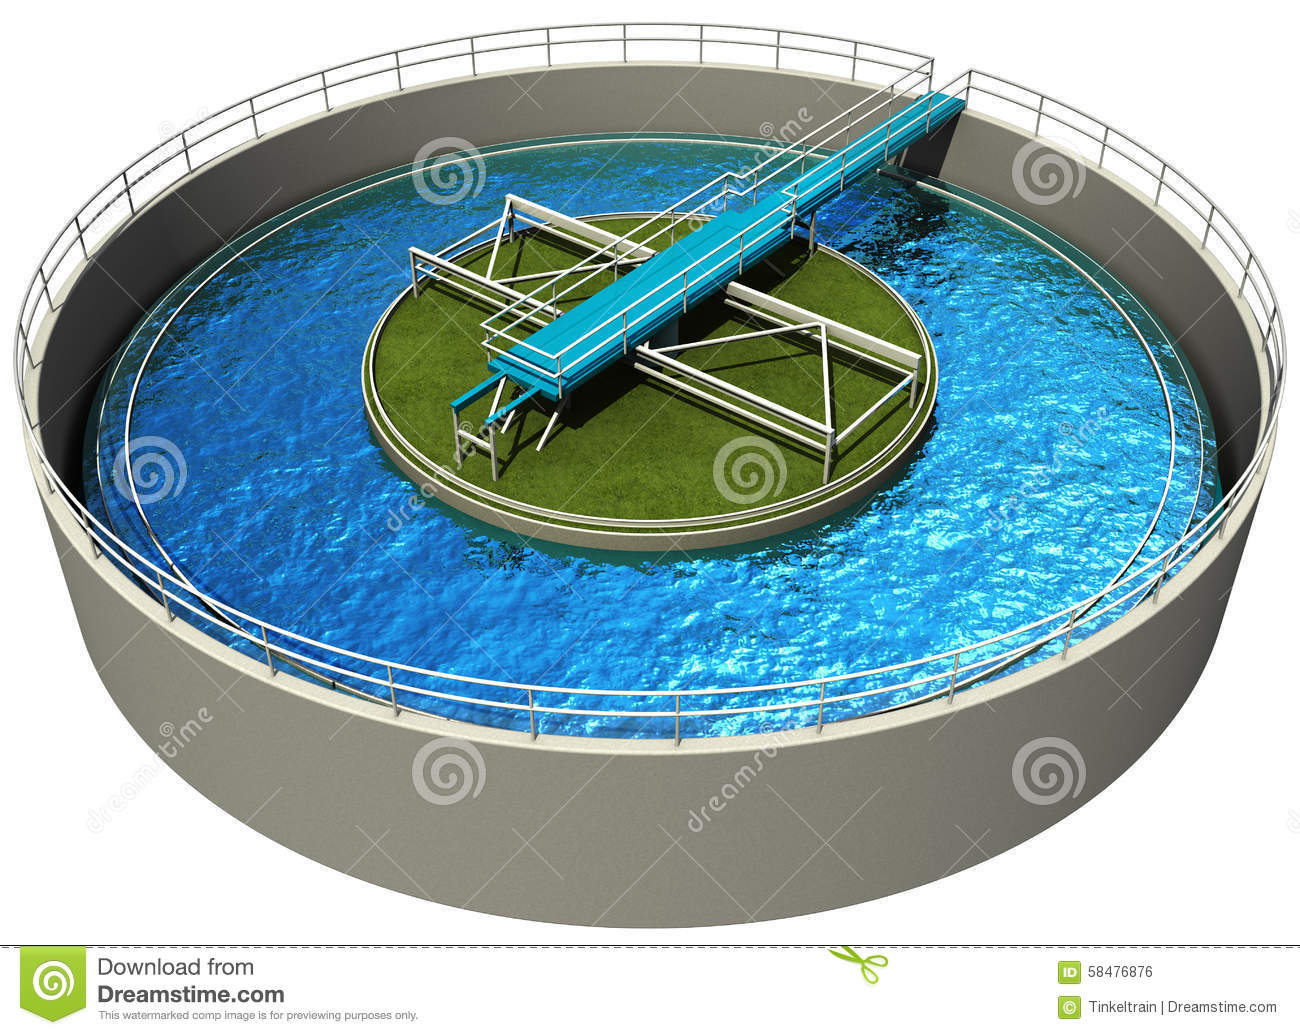 Waste Water Treatment Plant Stock Illustration.